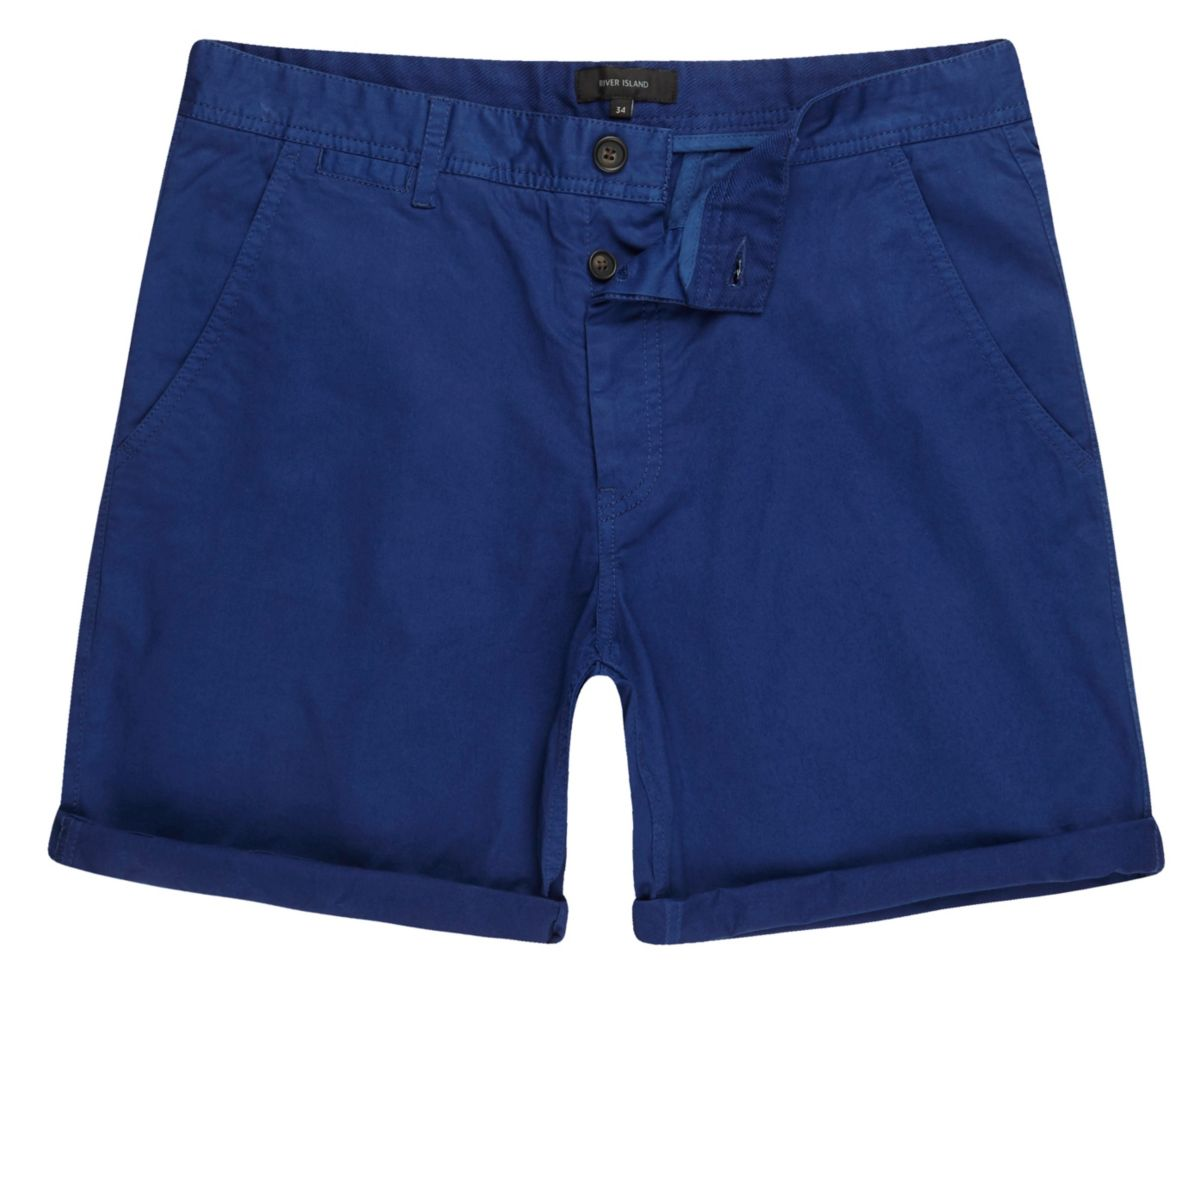 Blue slim fit chino shorts